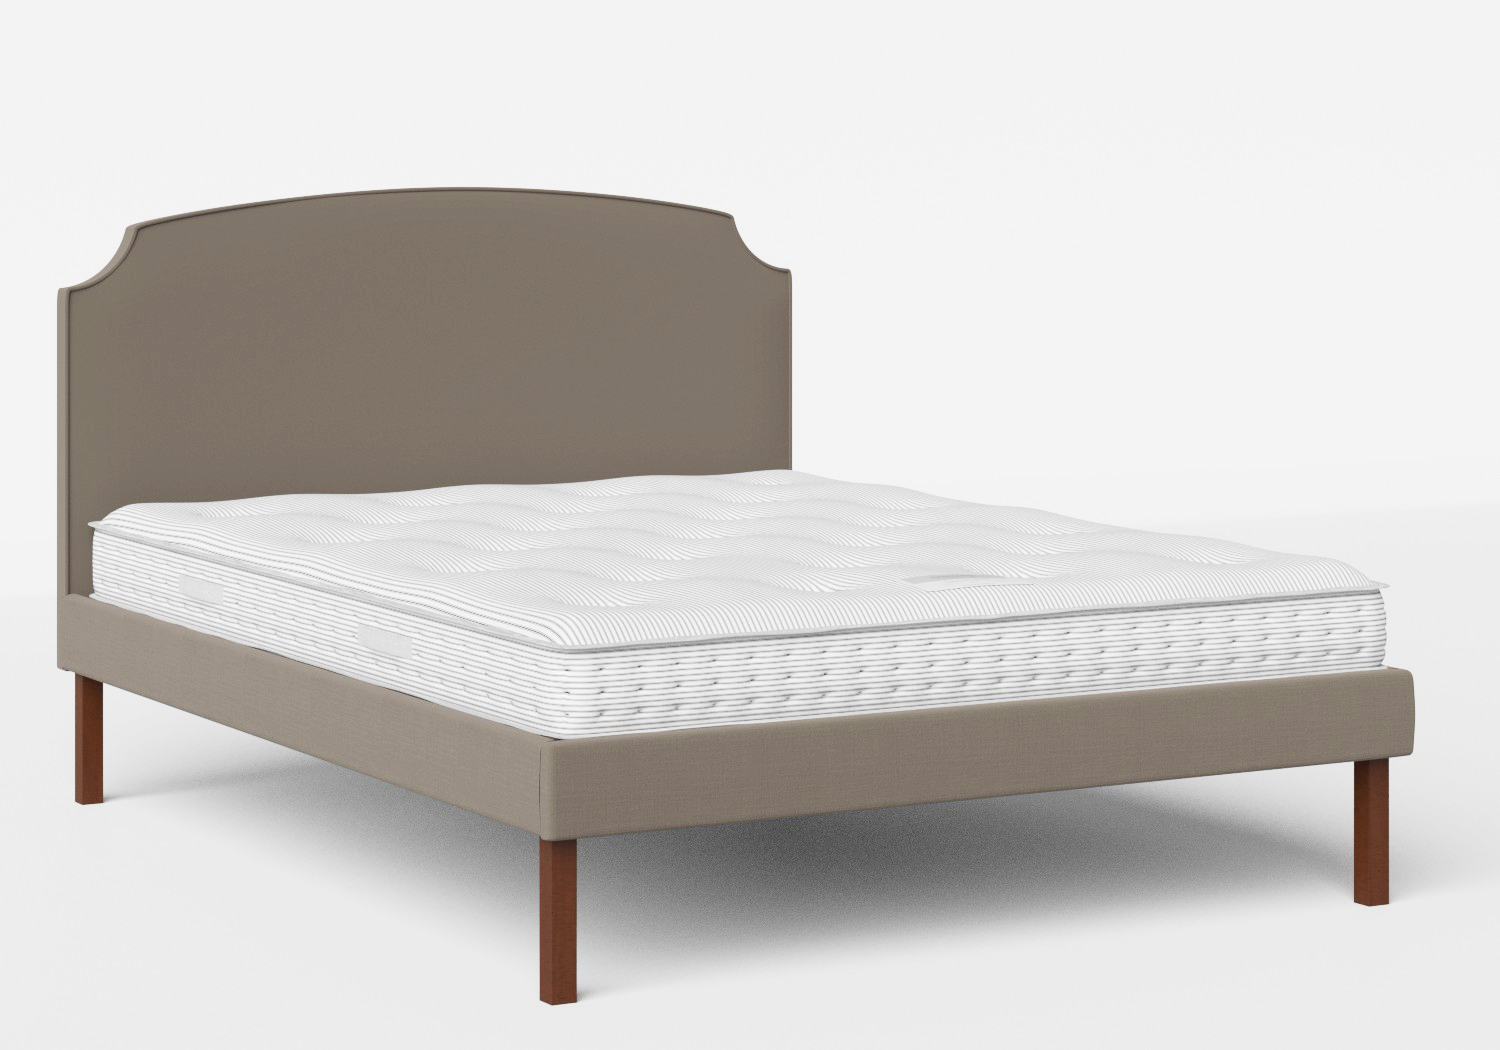 Kobe Upholstered Bed in Grey fabric with piping shown with Juno 1 mattress